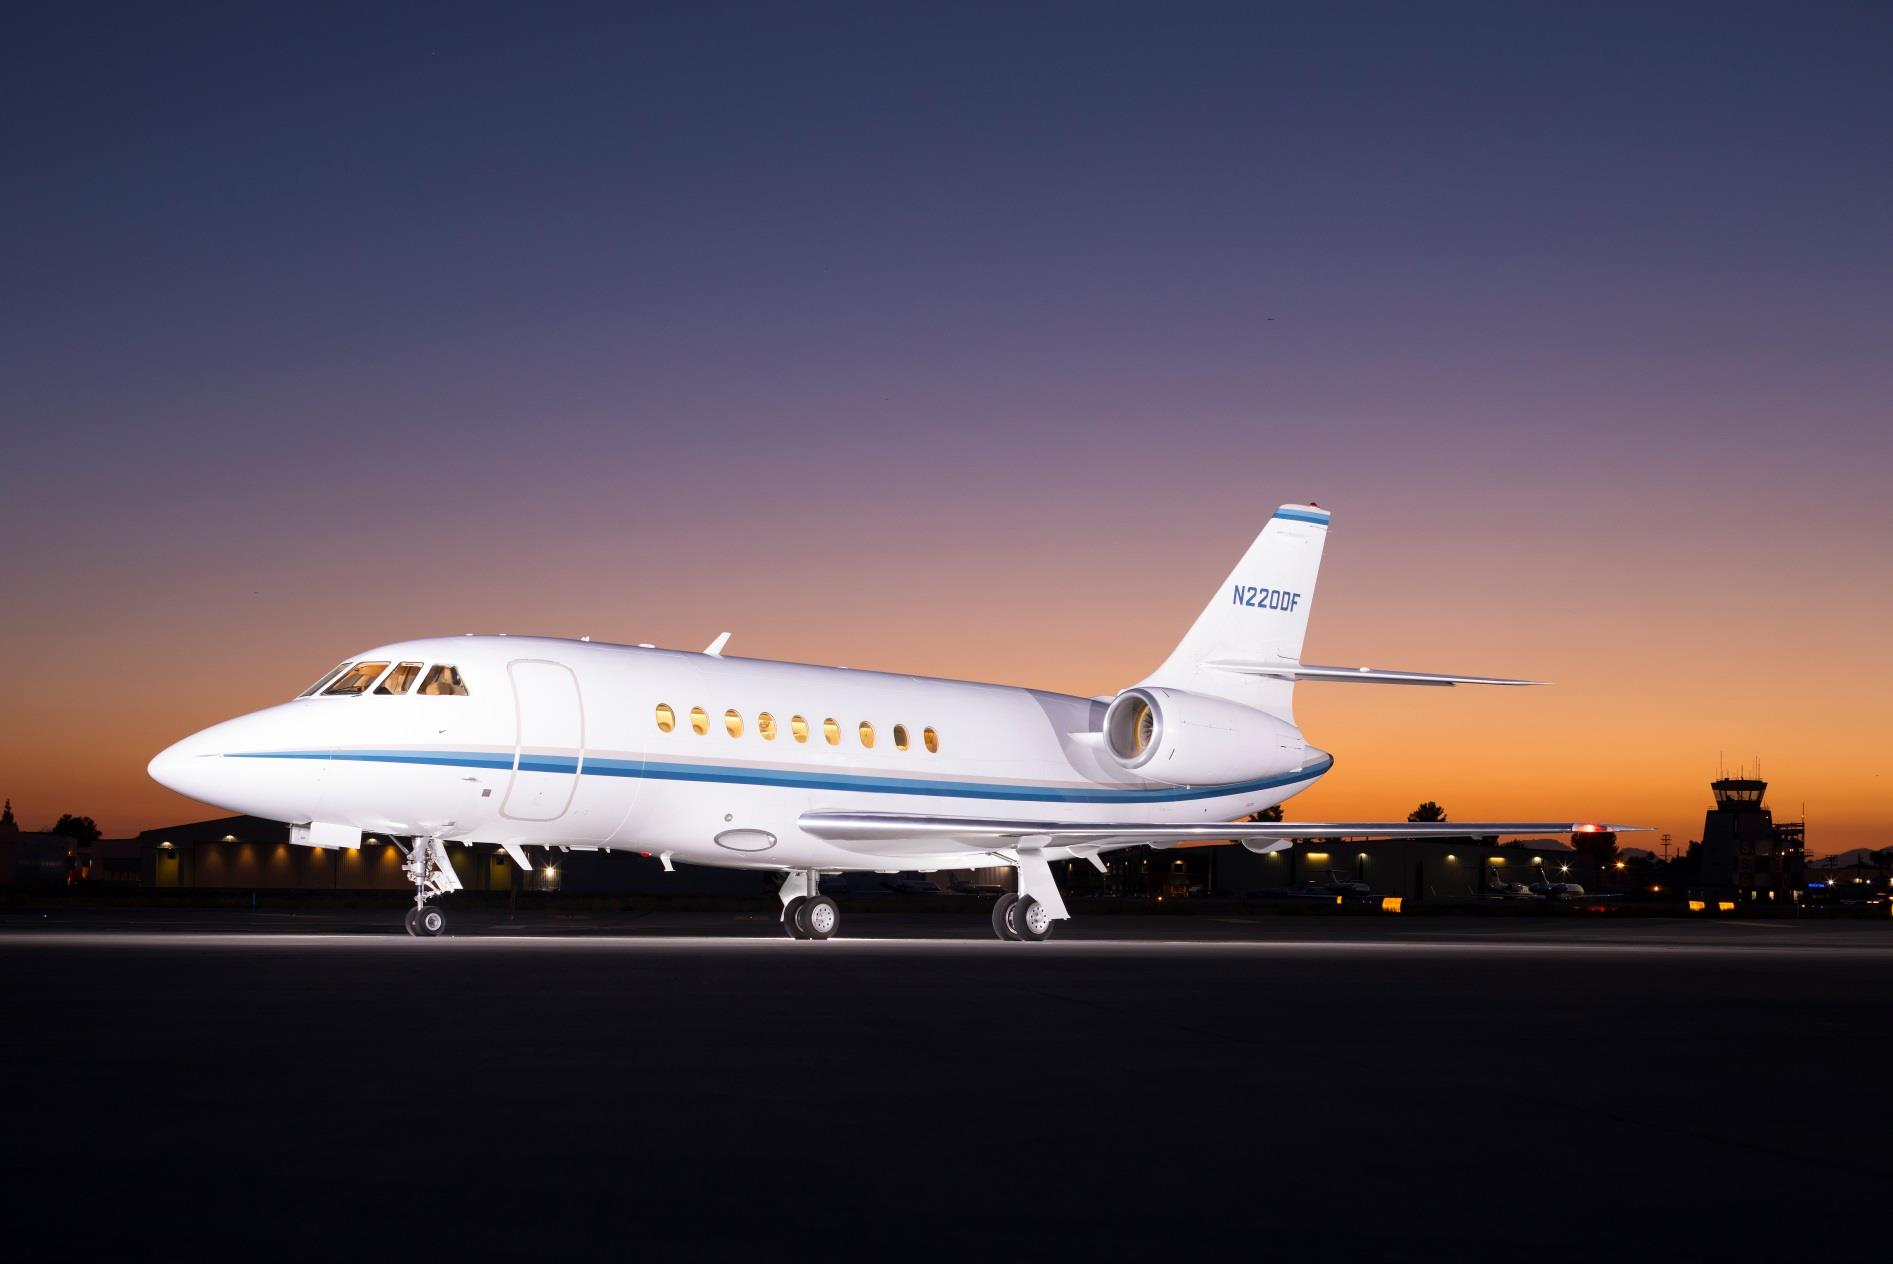 Commercial Insurance Brokers >> Falcon 2000 for Sale or Lease at Globalair.com